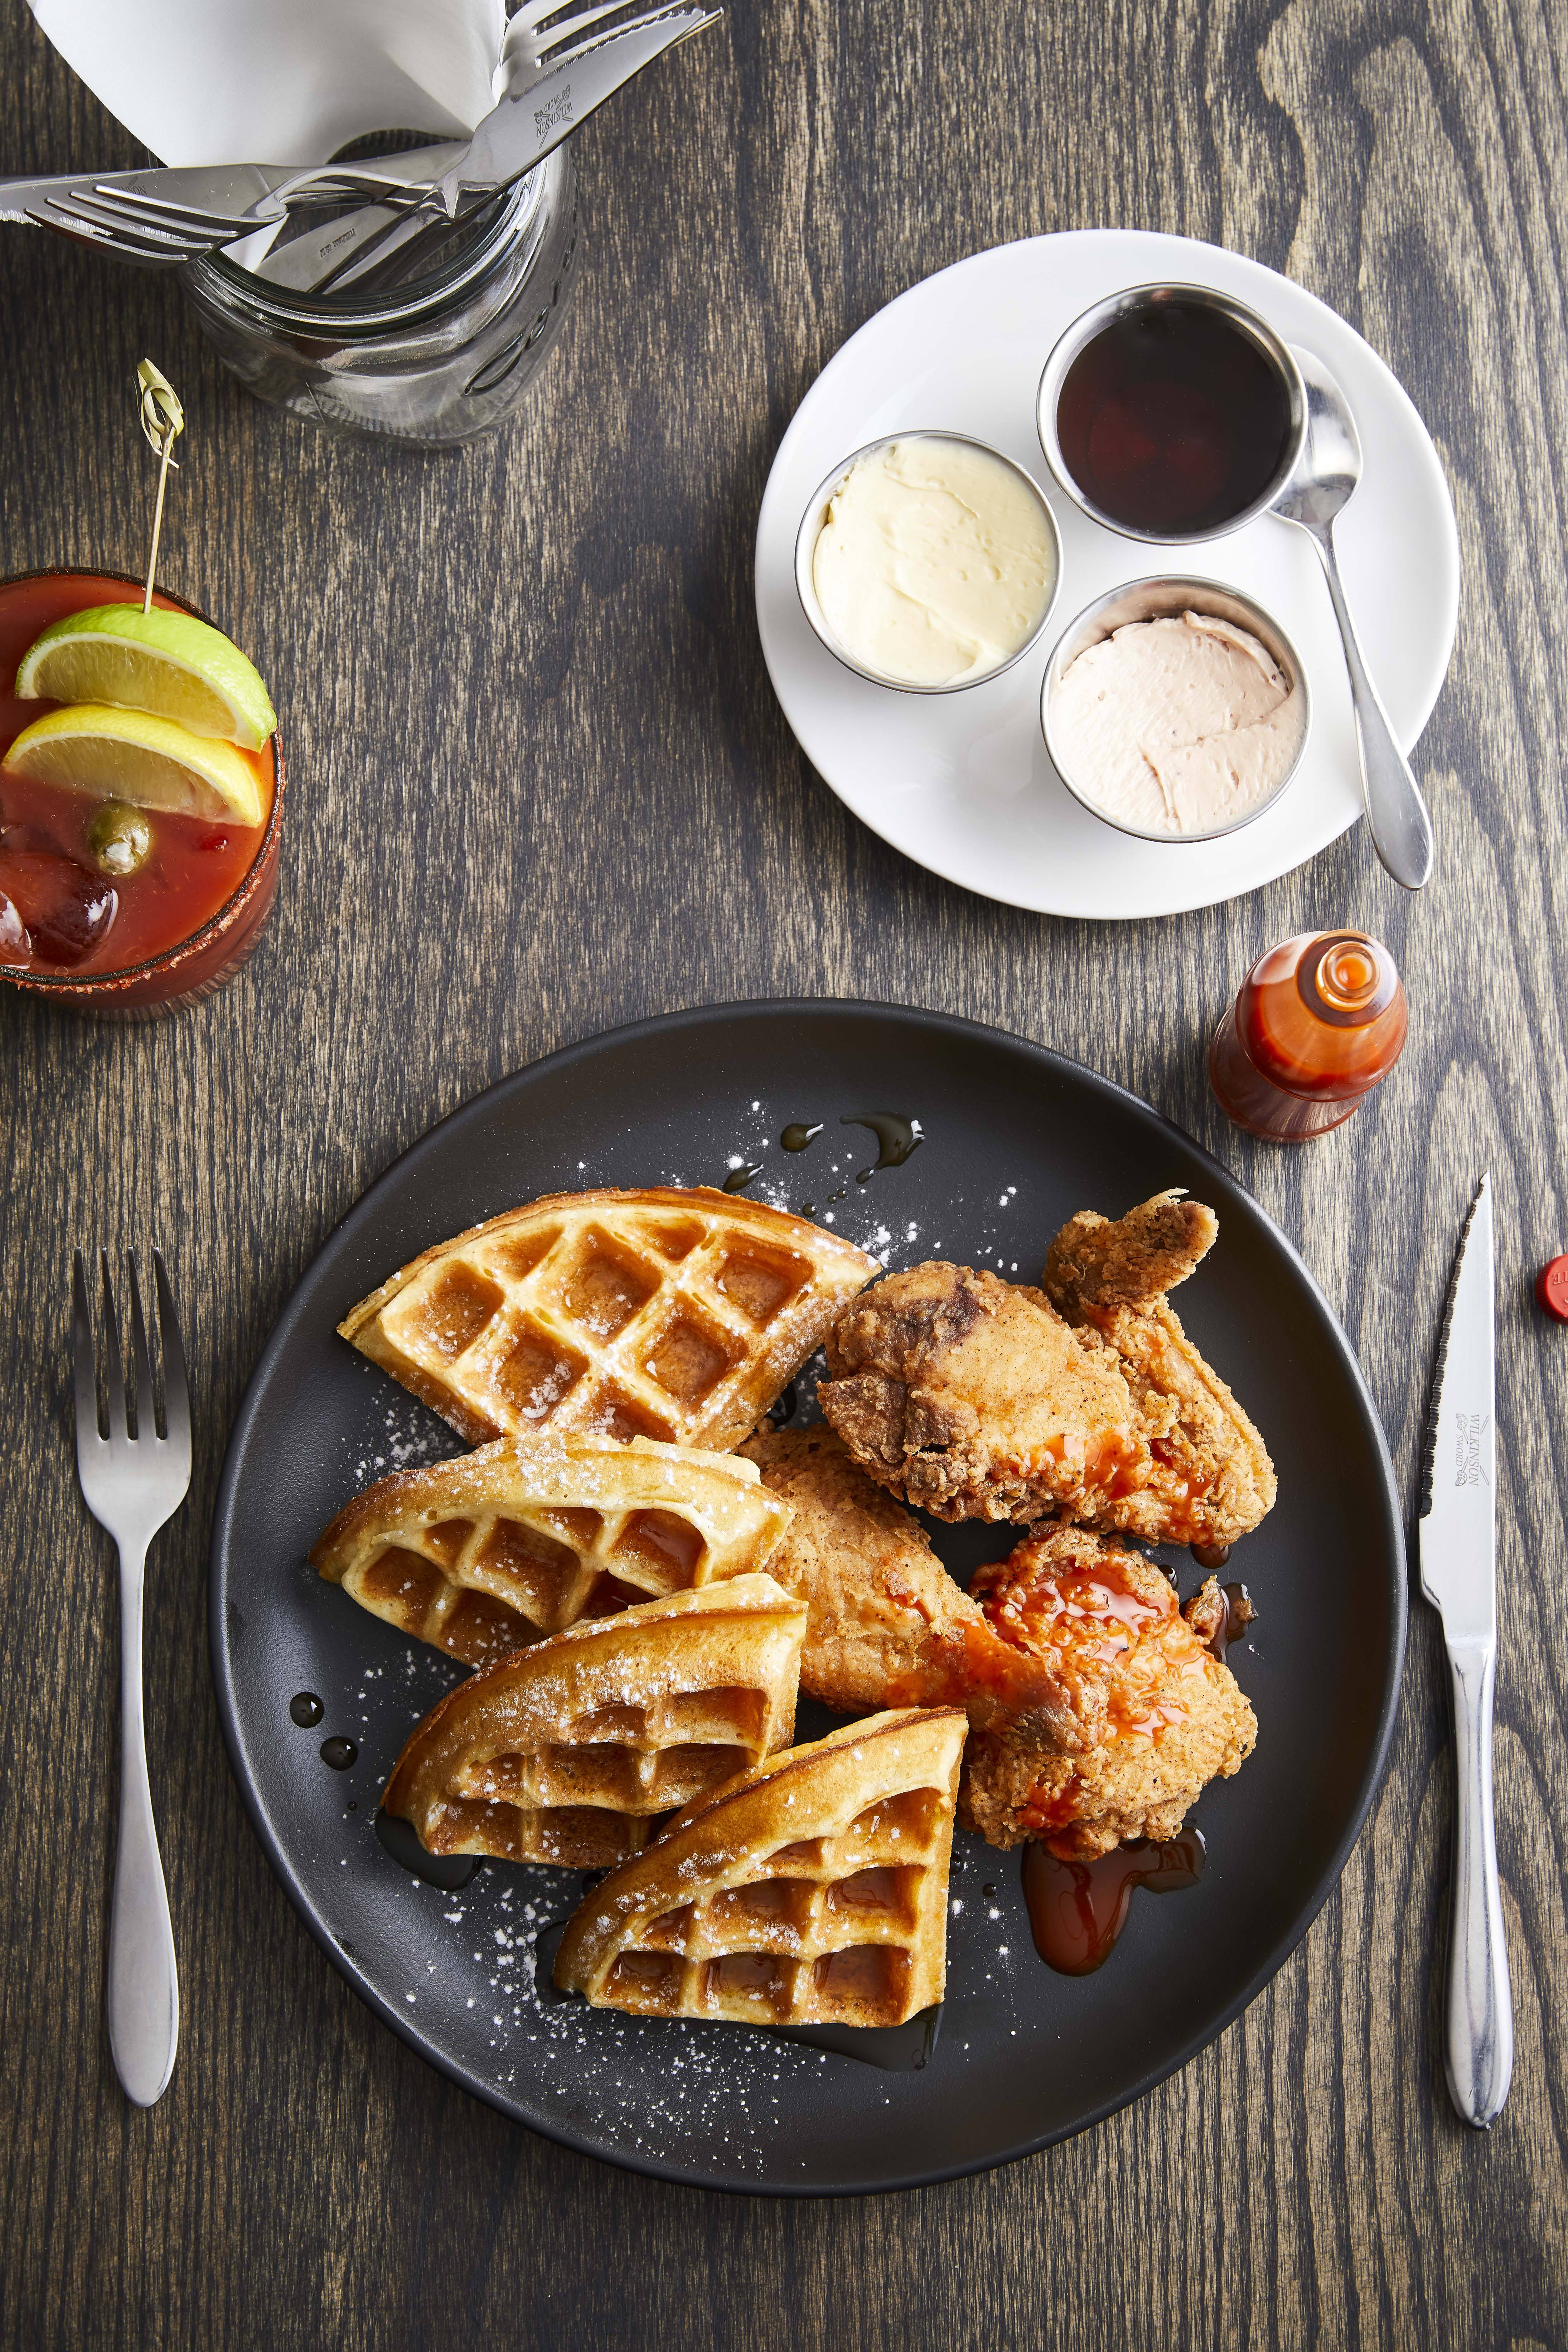 Mulberry & Prince Opens for Brunch